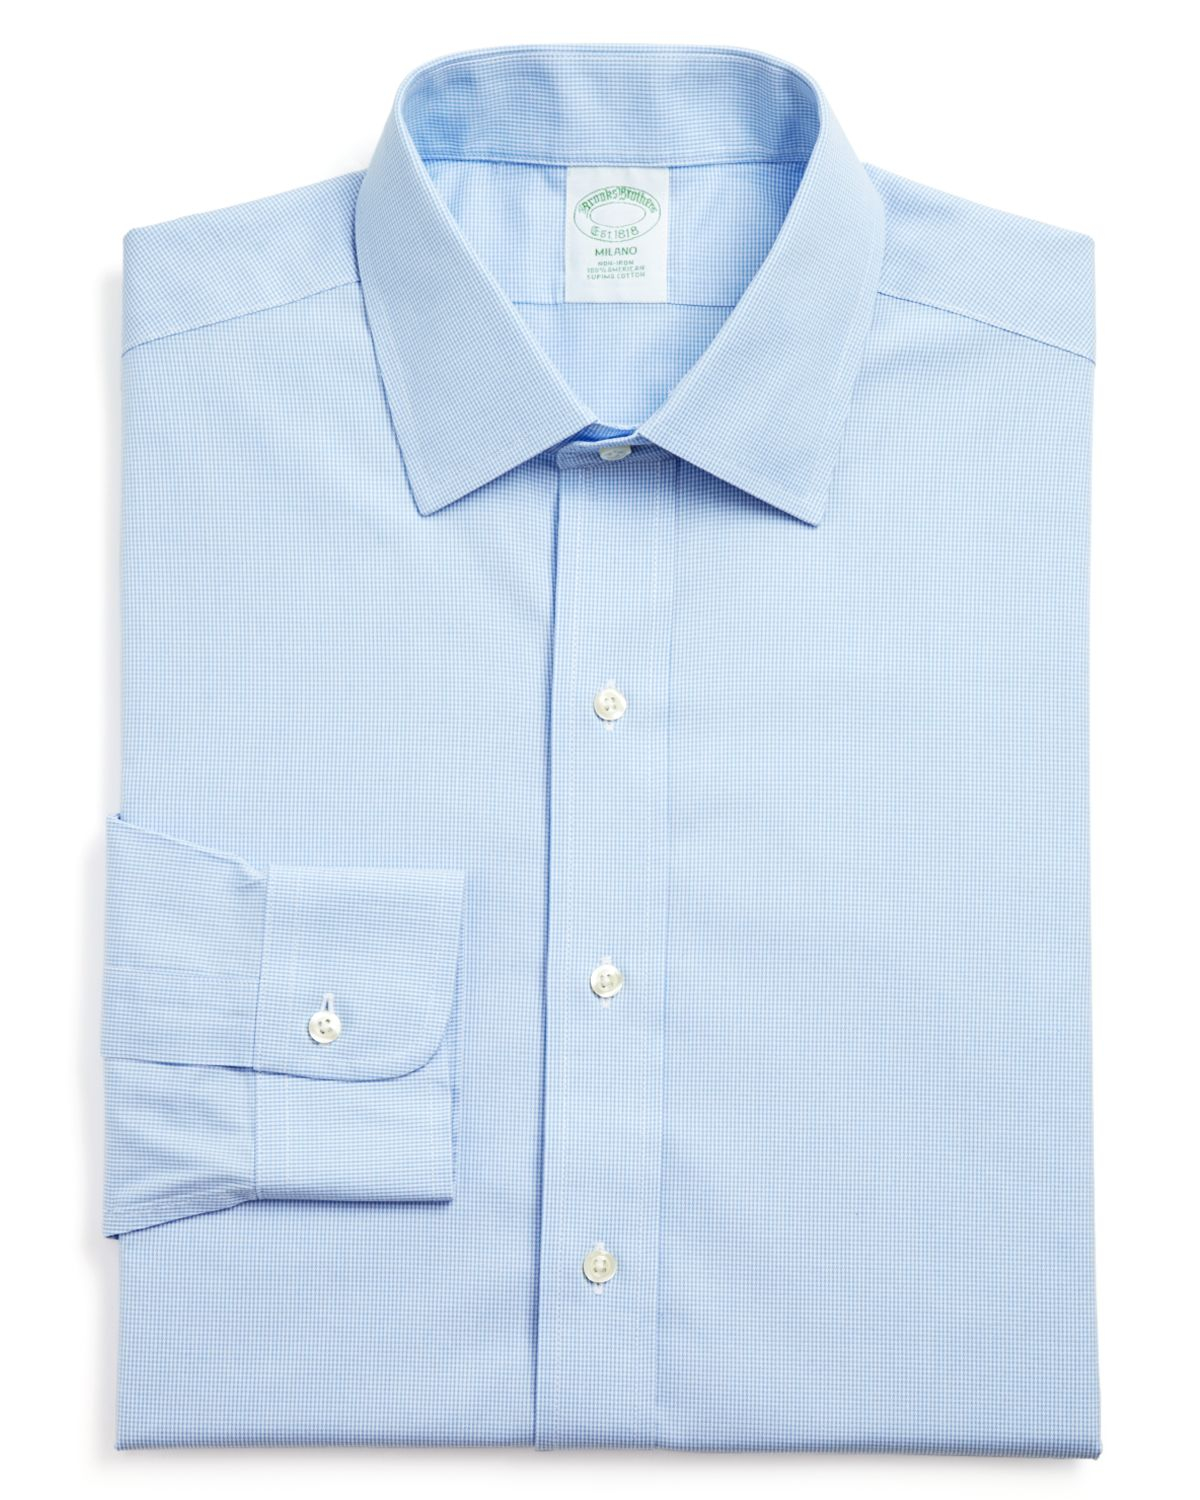 Brooks brothers micro houndstooth non iron dress shirt for Brooks brothers non iron shirts review